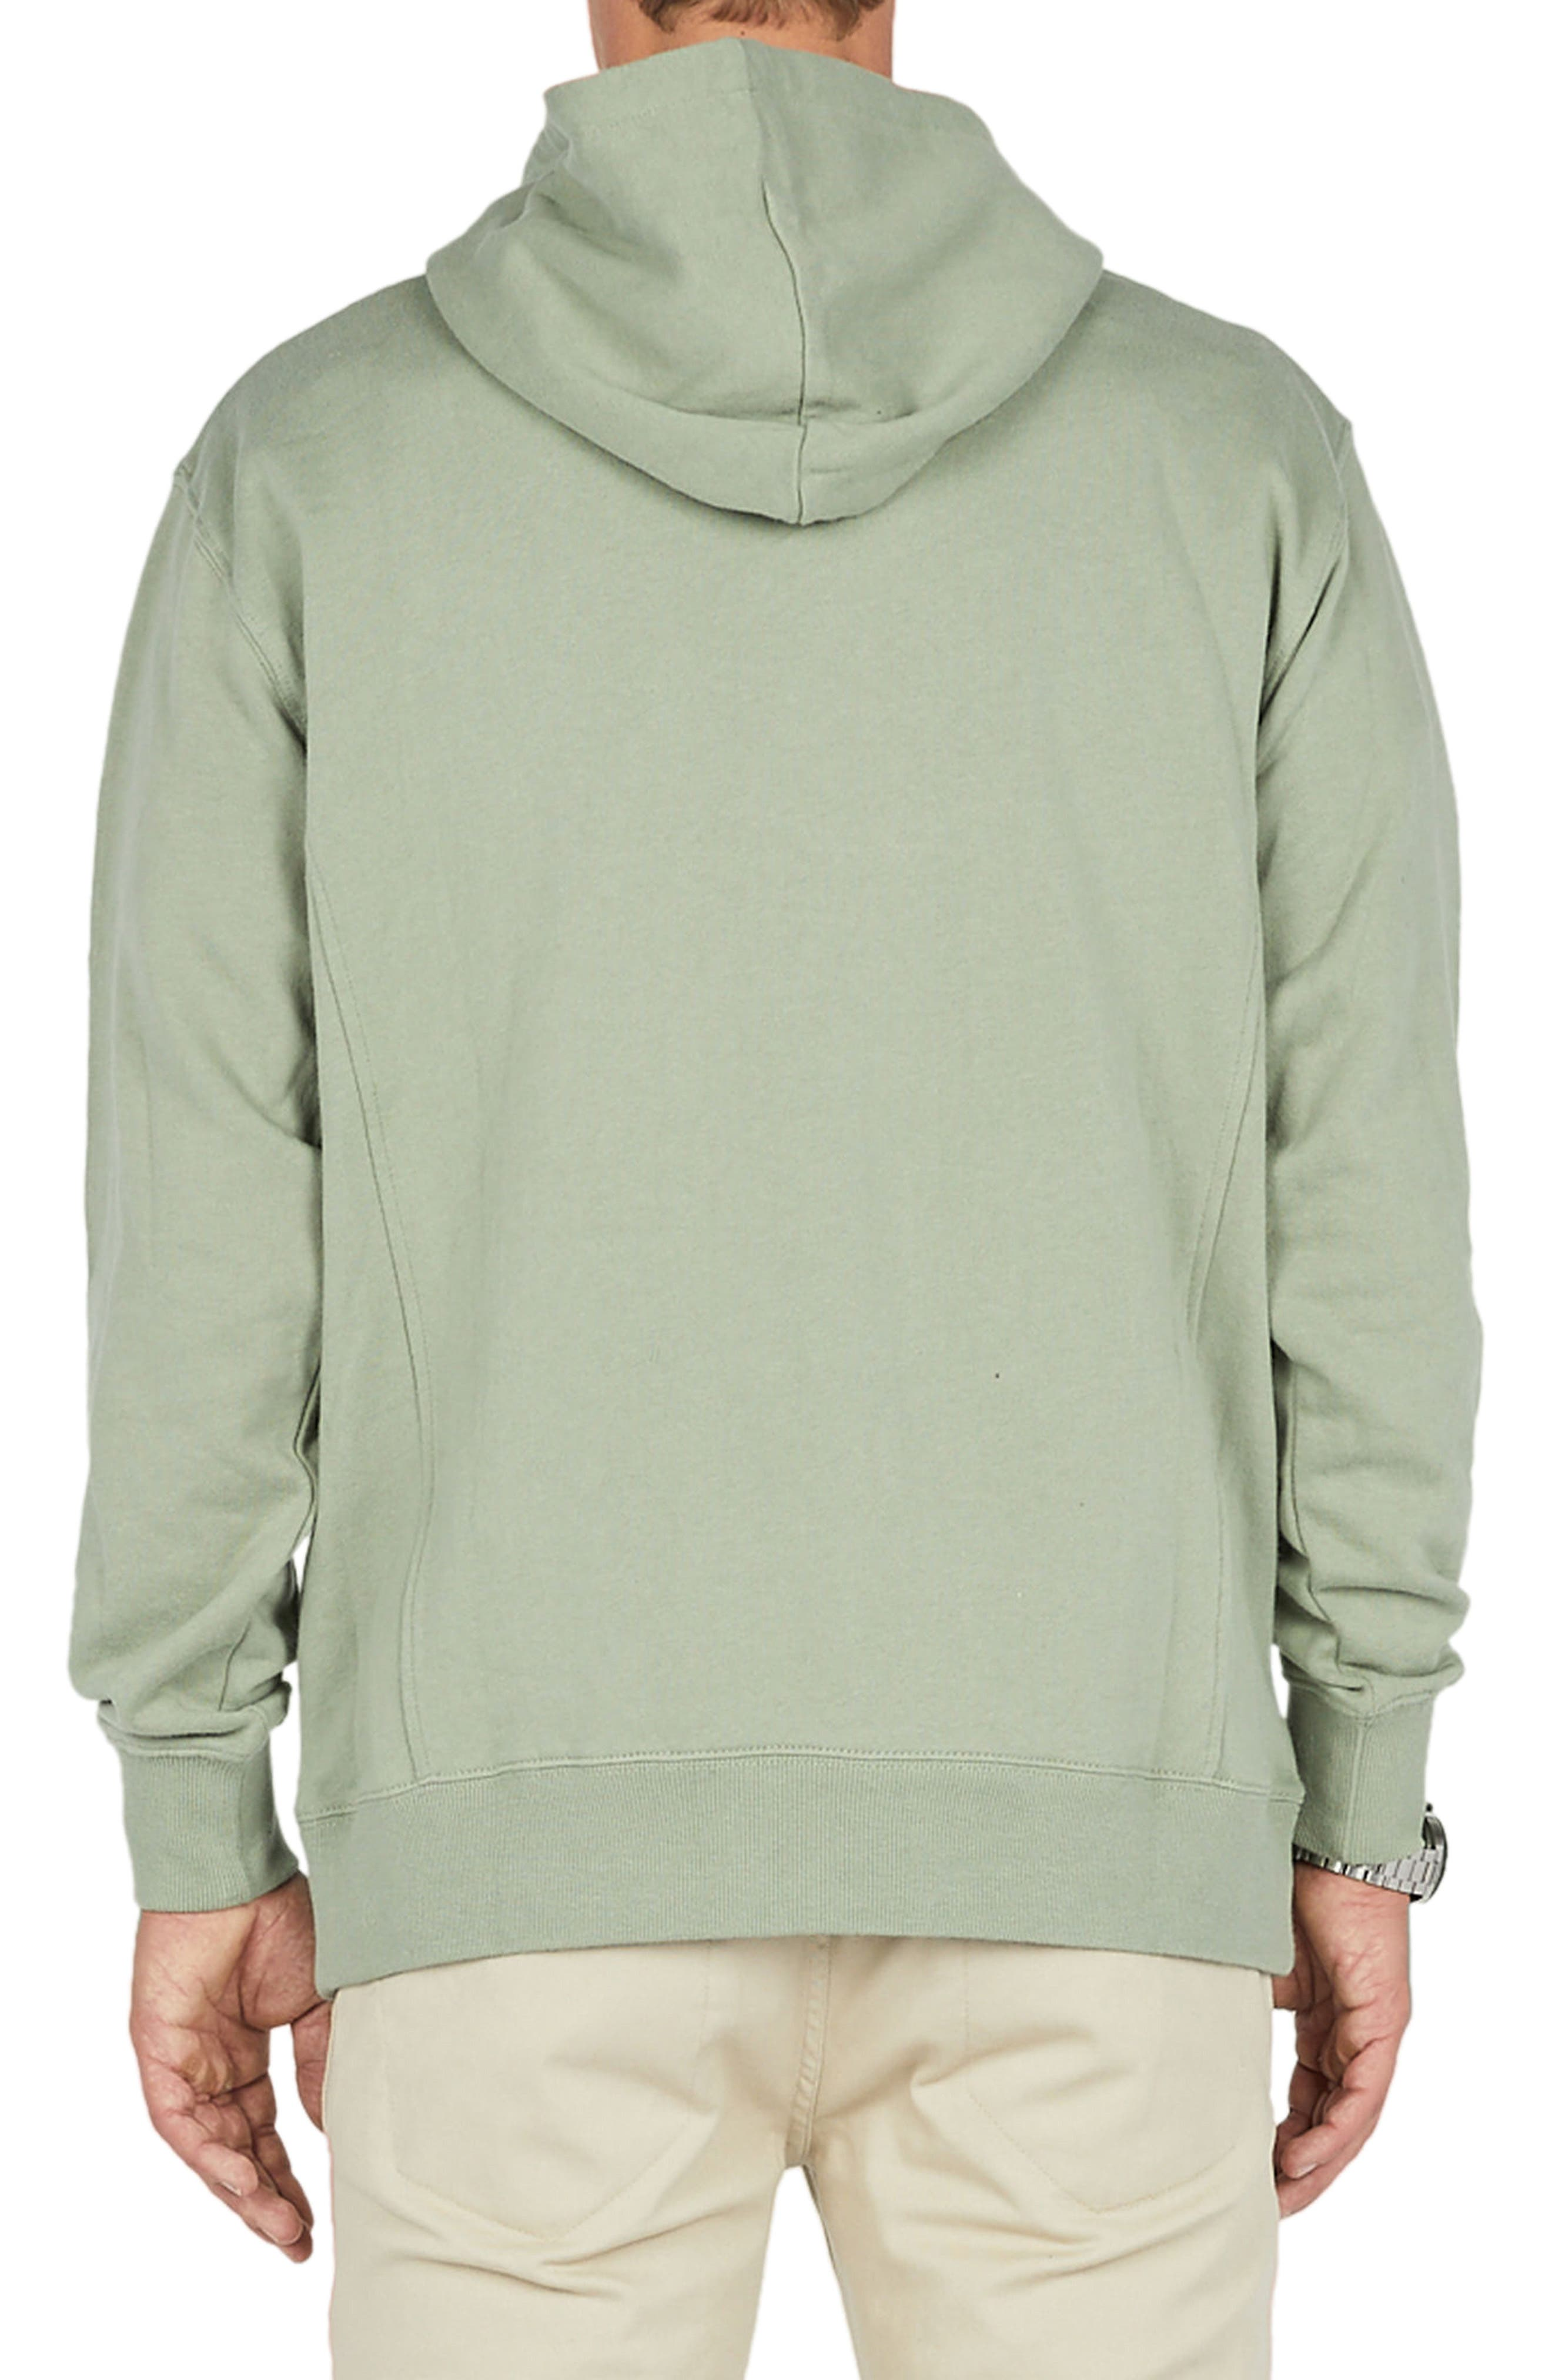 B. Cause Hoodie,                             Alternate thumbnail 2, color,                             Seagrass